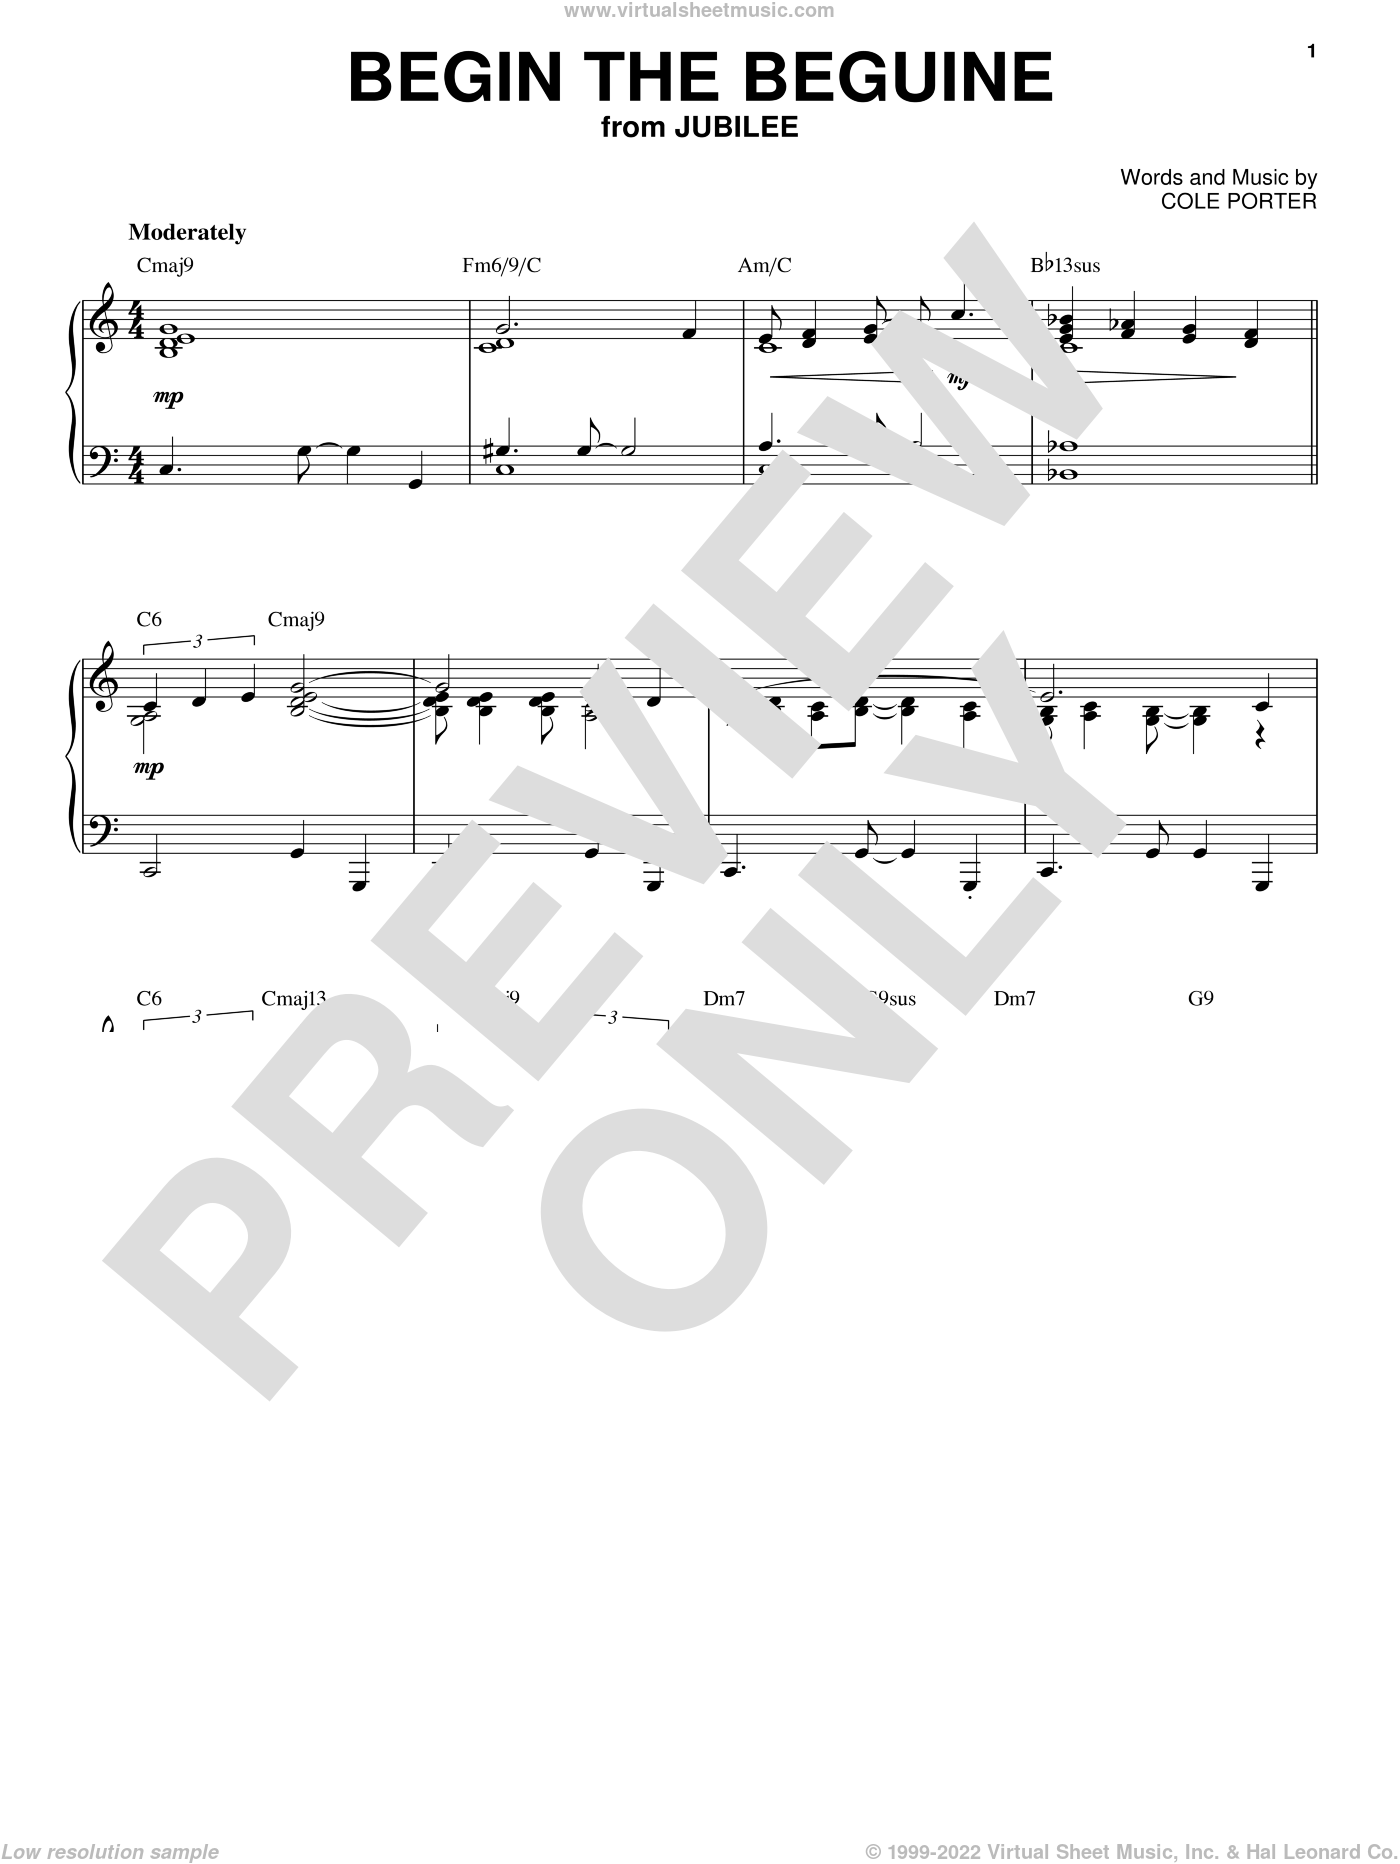 Begin The Beguine sheet music for piano solo by Cole Porter, intermediate skill level